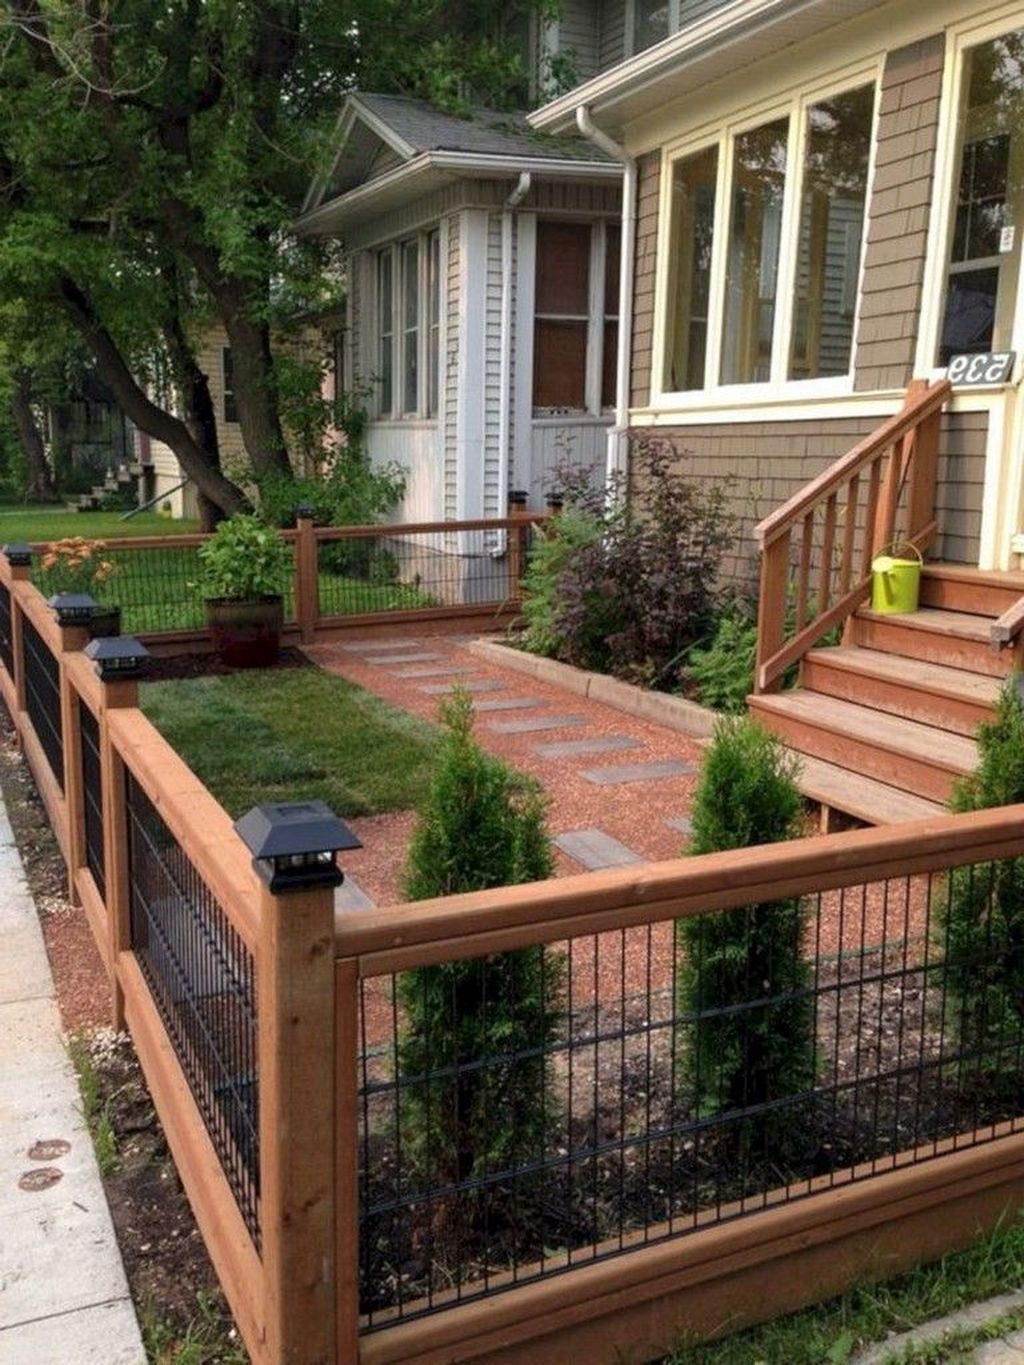 Front Yard Fence Ideas That You Need To Try In 2020 Small Garden Fence Front Yard Landscaping Design Small Front Yard Landscaping